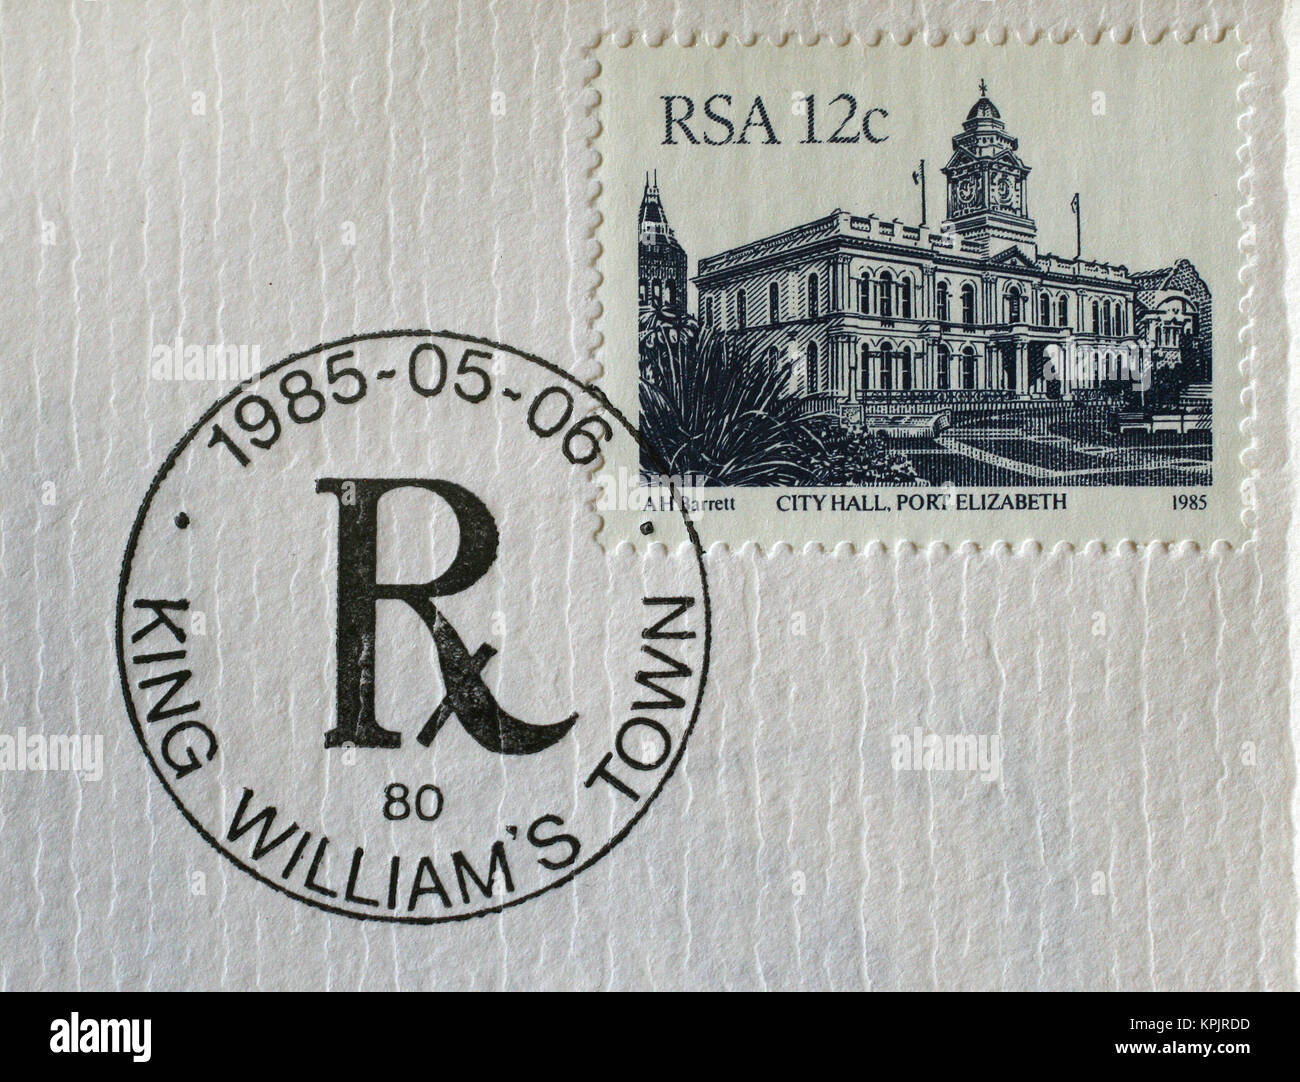 King Williams Town card & P.E. City Hall, postage stamp from 6 May 1985, Eastern Cape Province, South Africa. - Stock Image